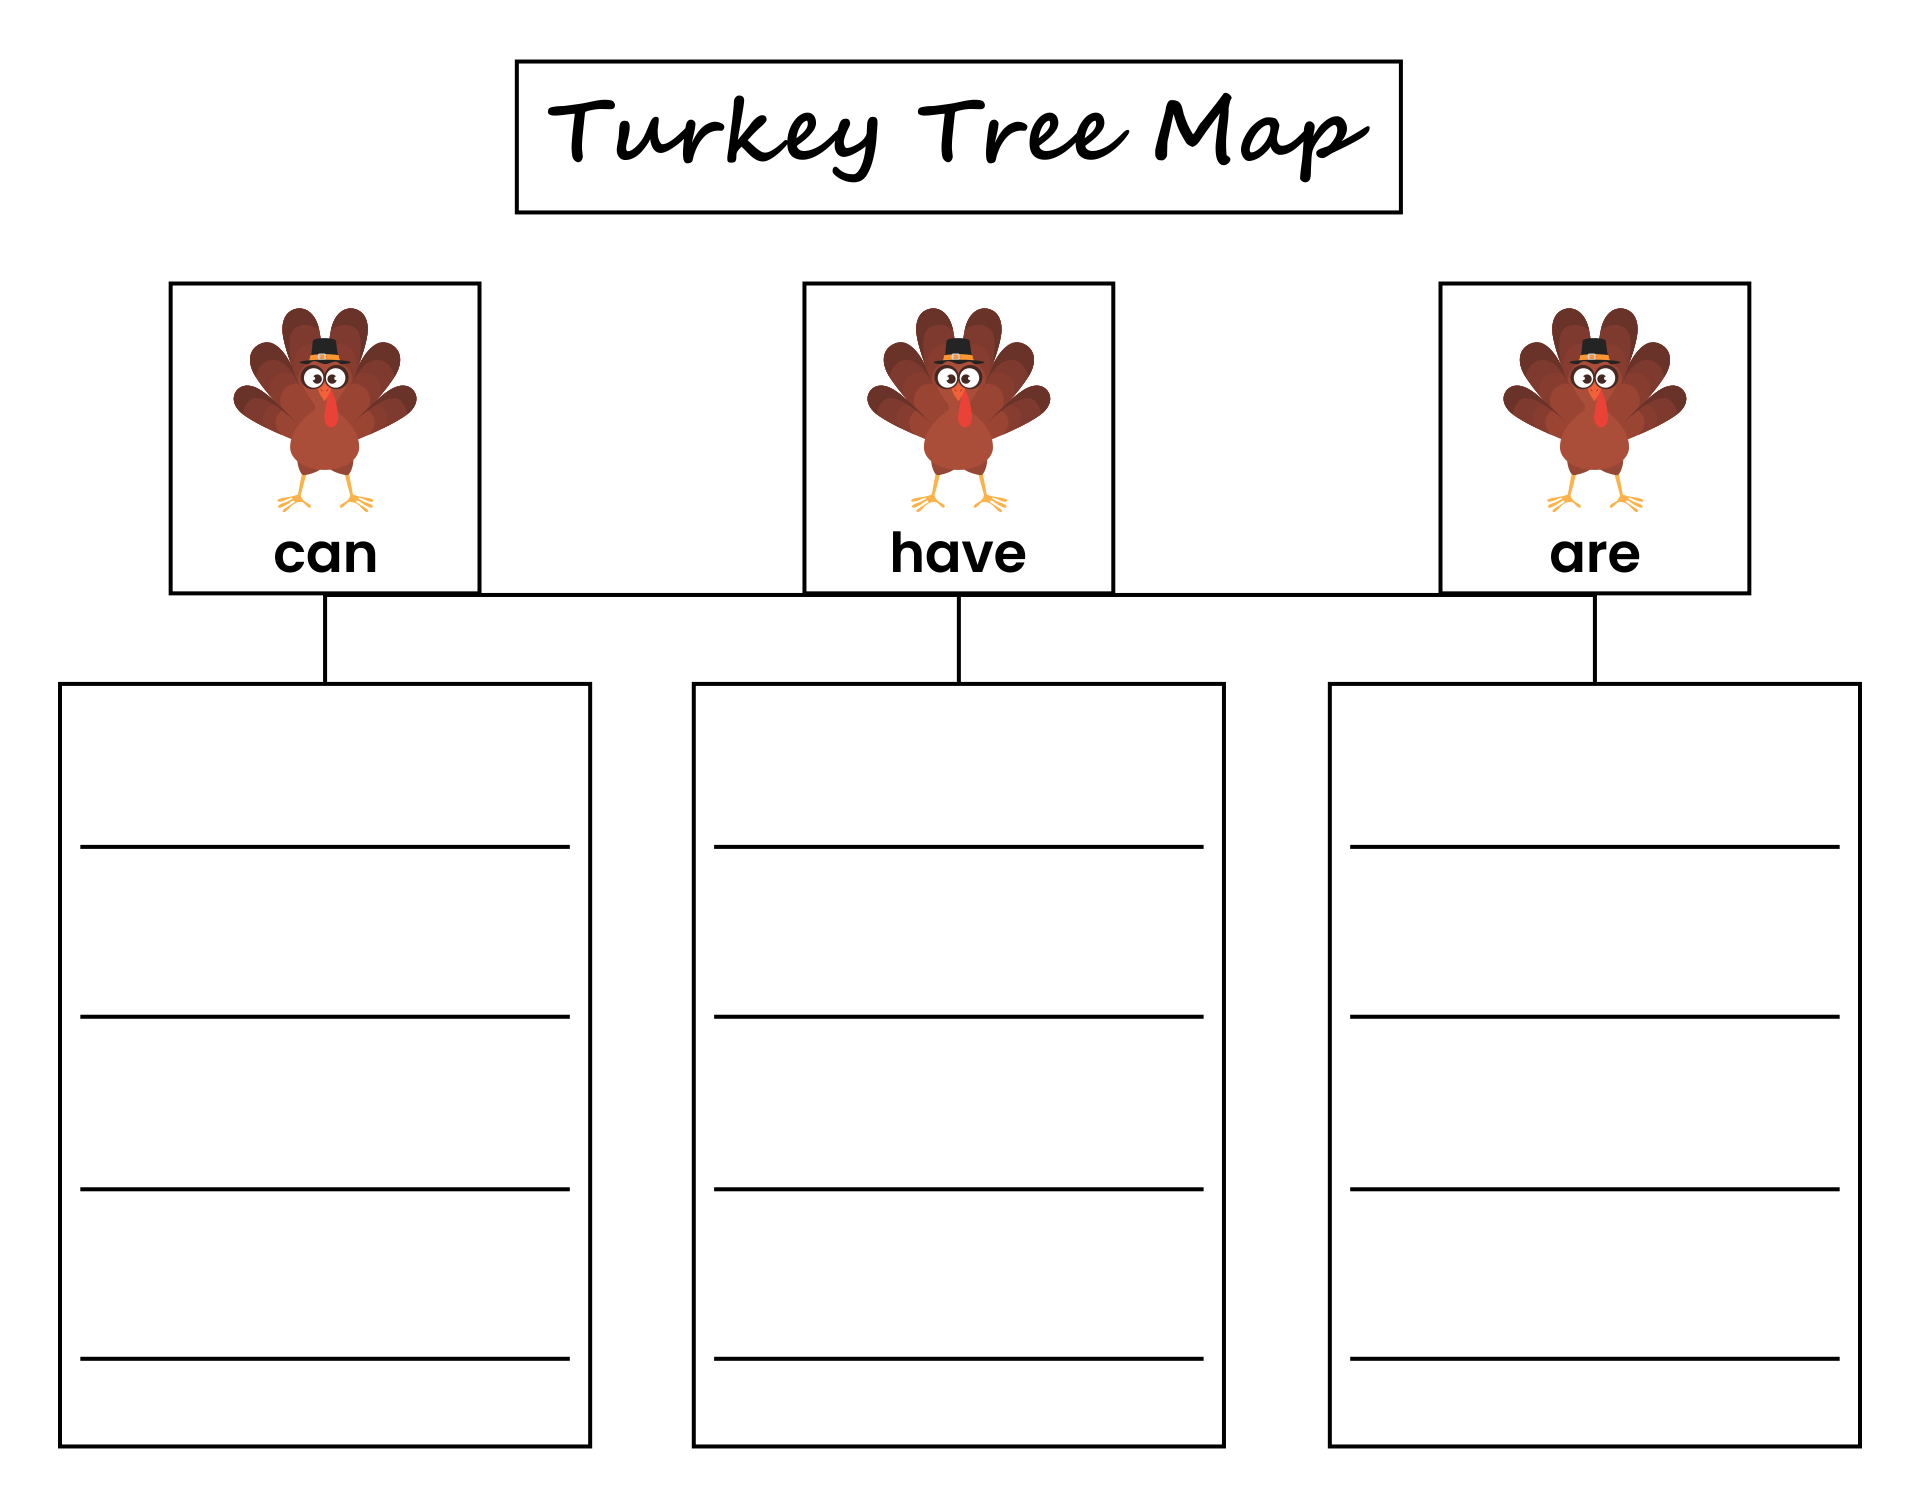 Number Names Worksheets thanksgiving activity for kindergarten – Kindergarten Thanksgiving Worksheet